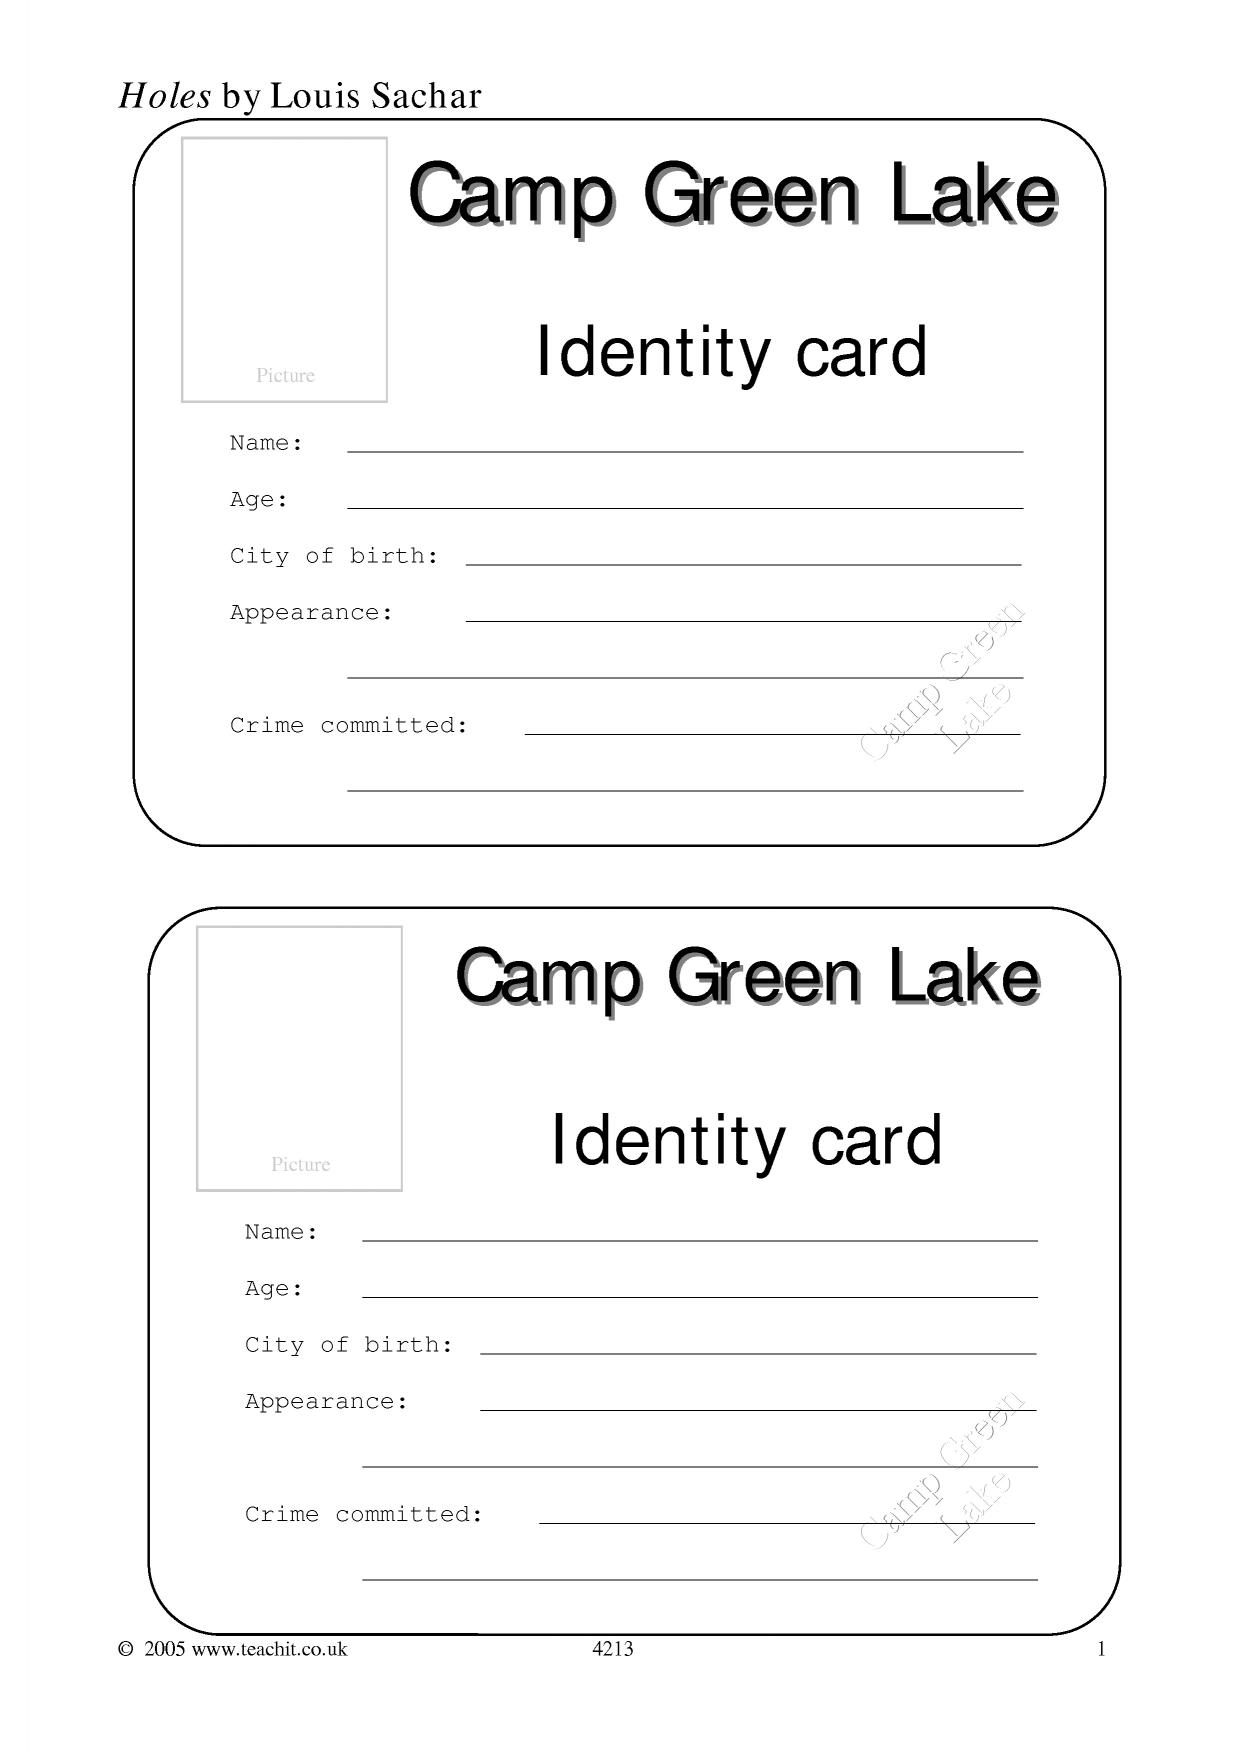 holes essay camp green lake id card holes by louis sachar home  camp green lake id card holes by louis sachar home page